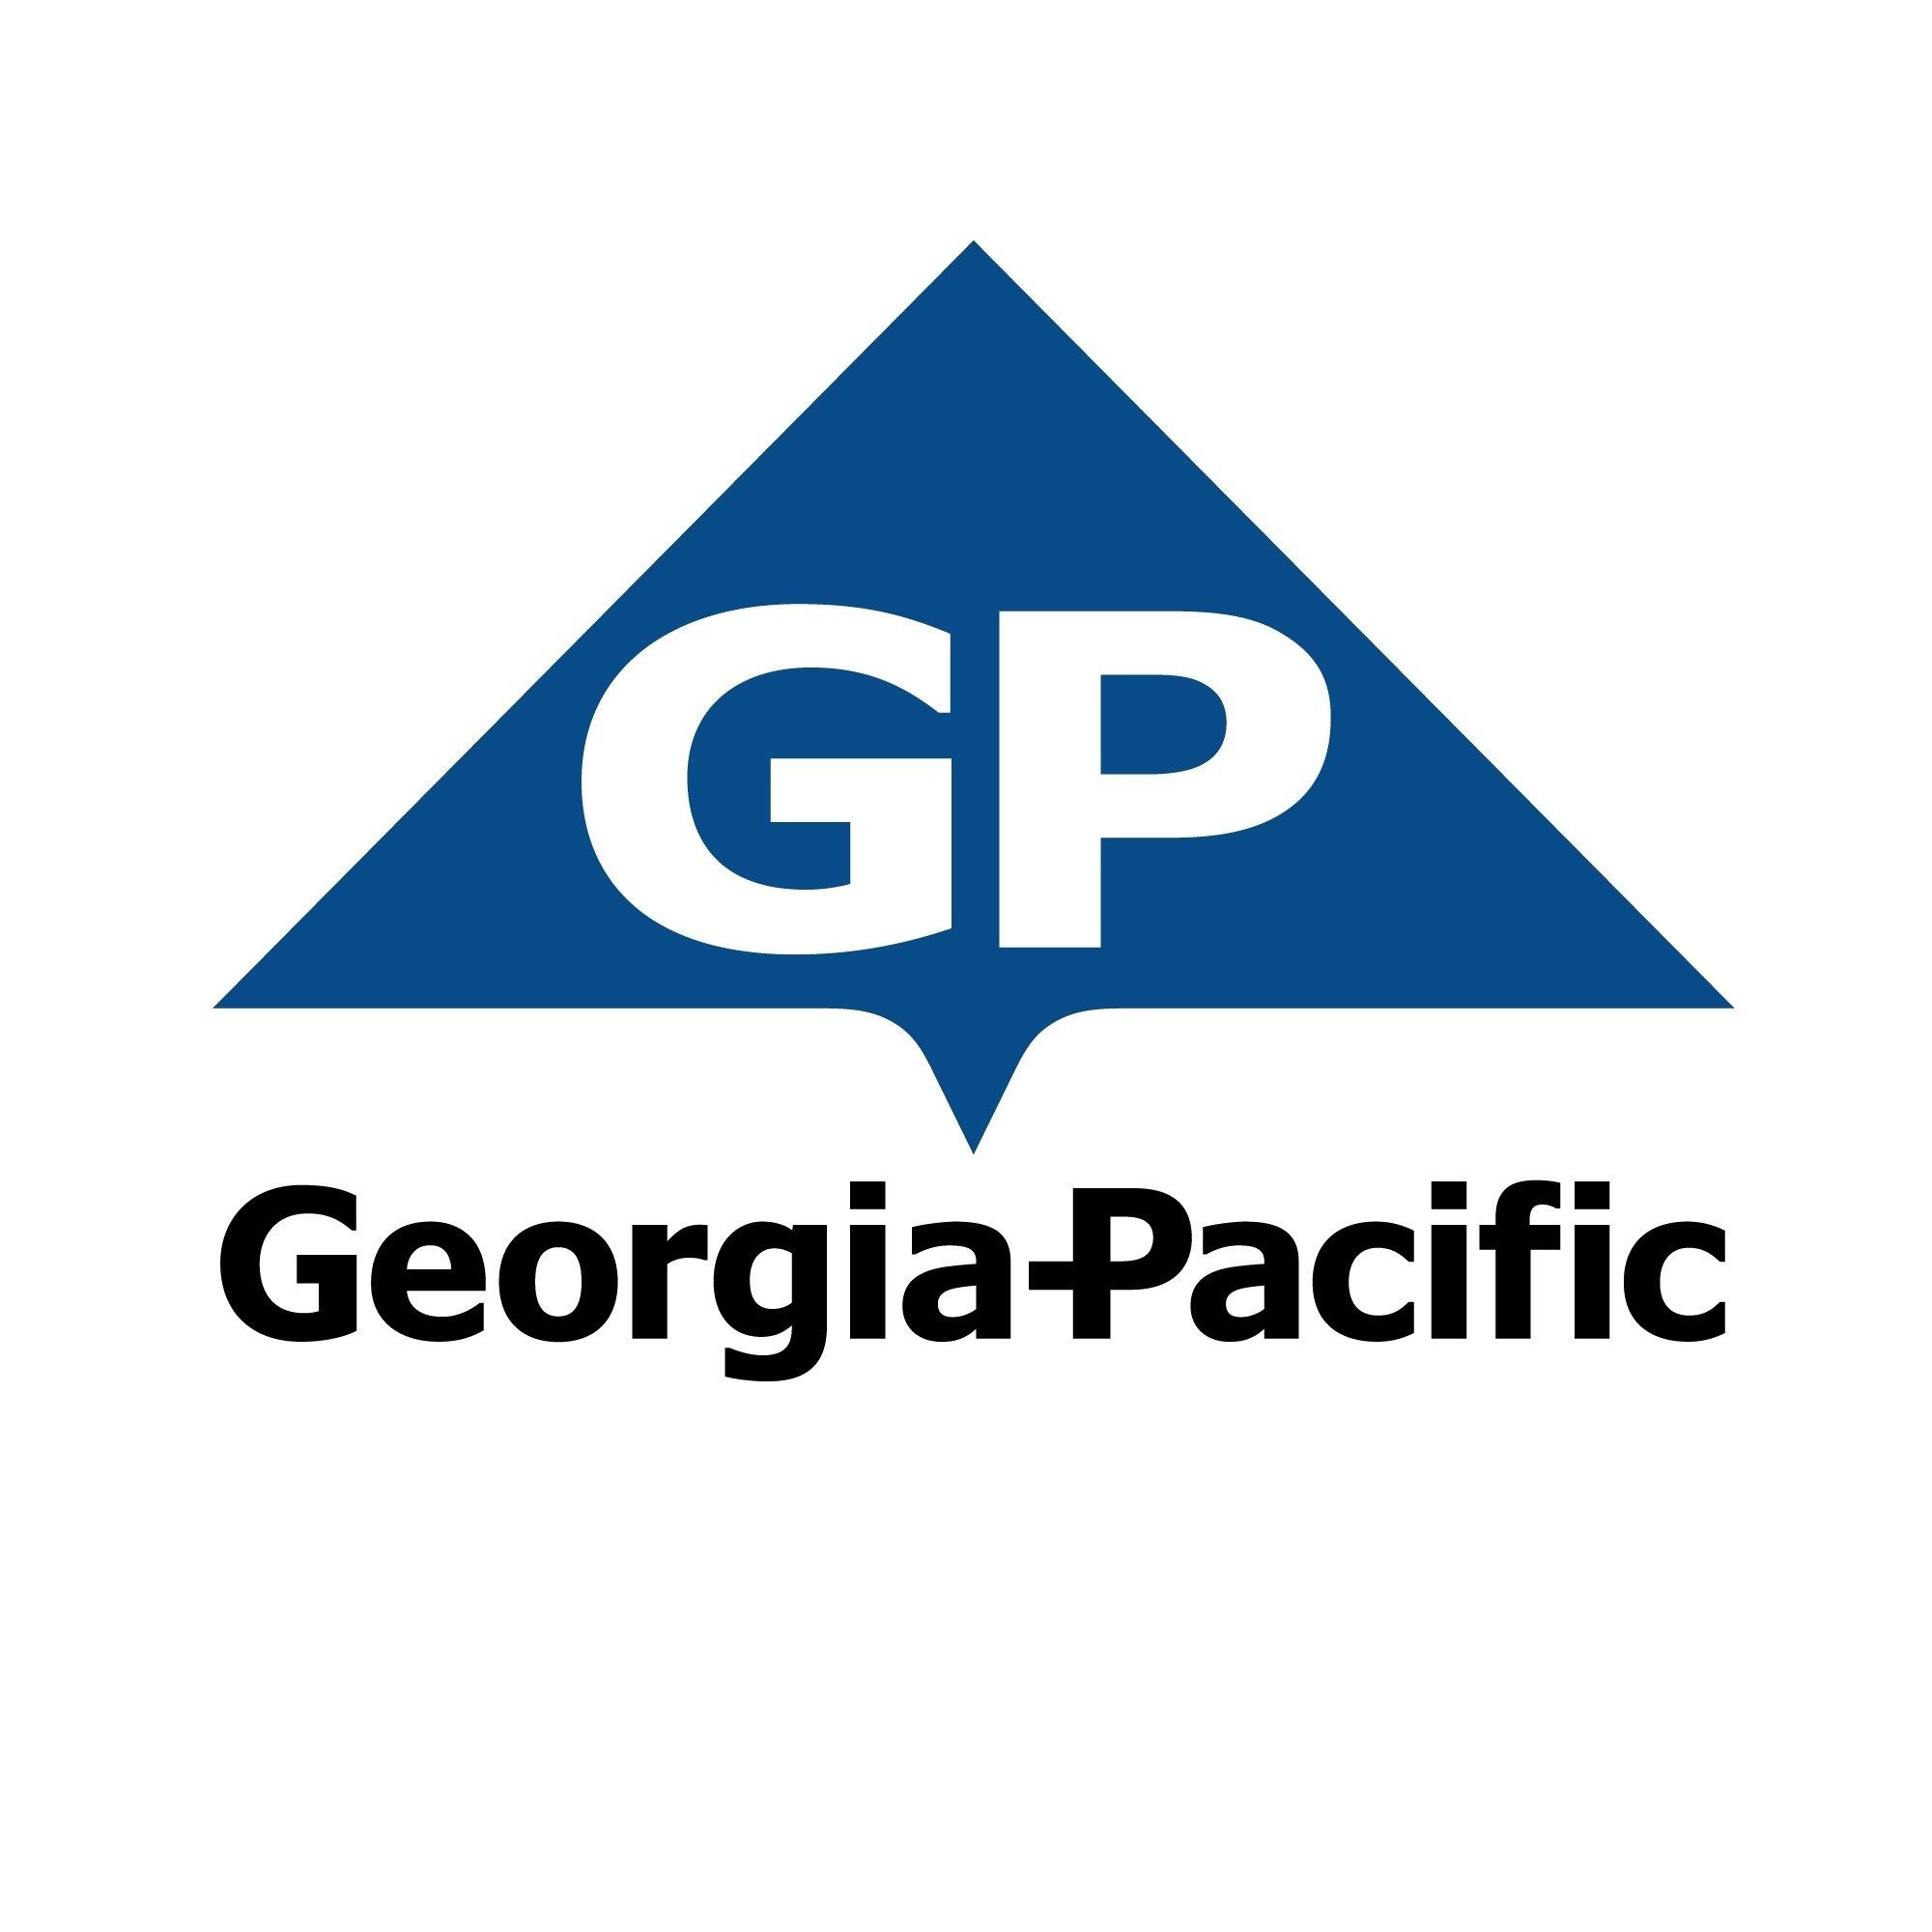 Georgia Pacific Atlanta Corporations